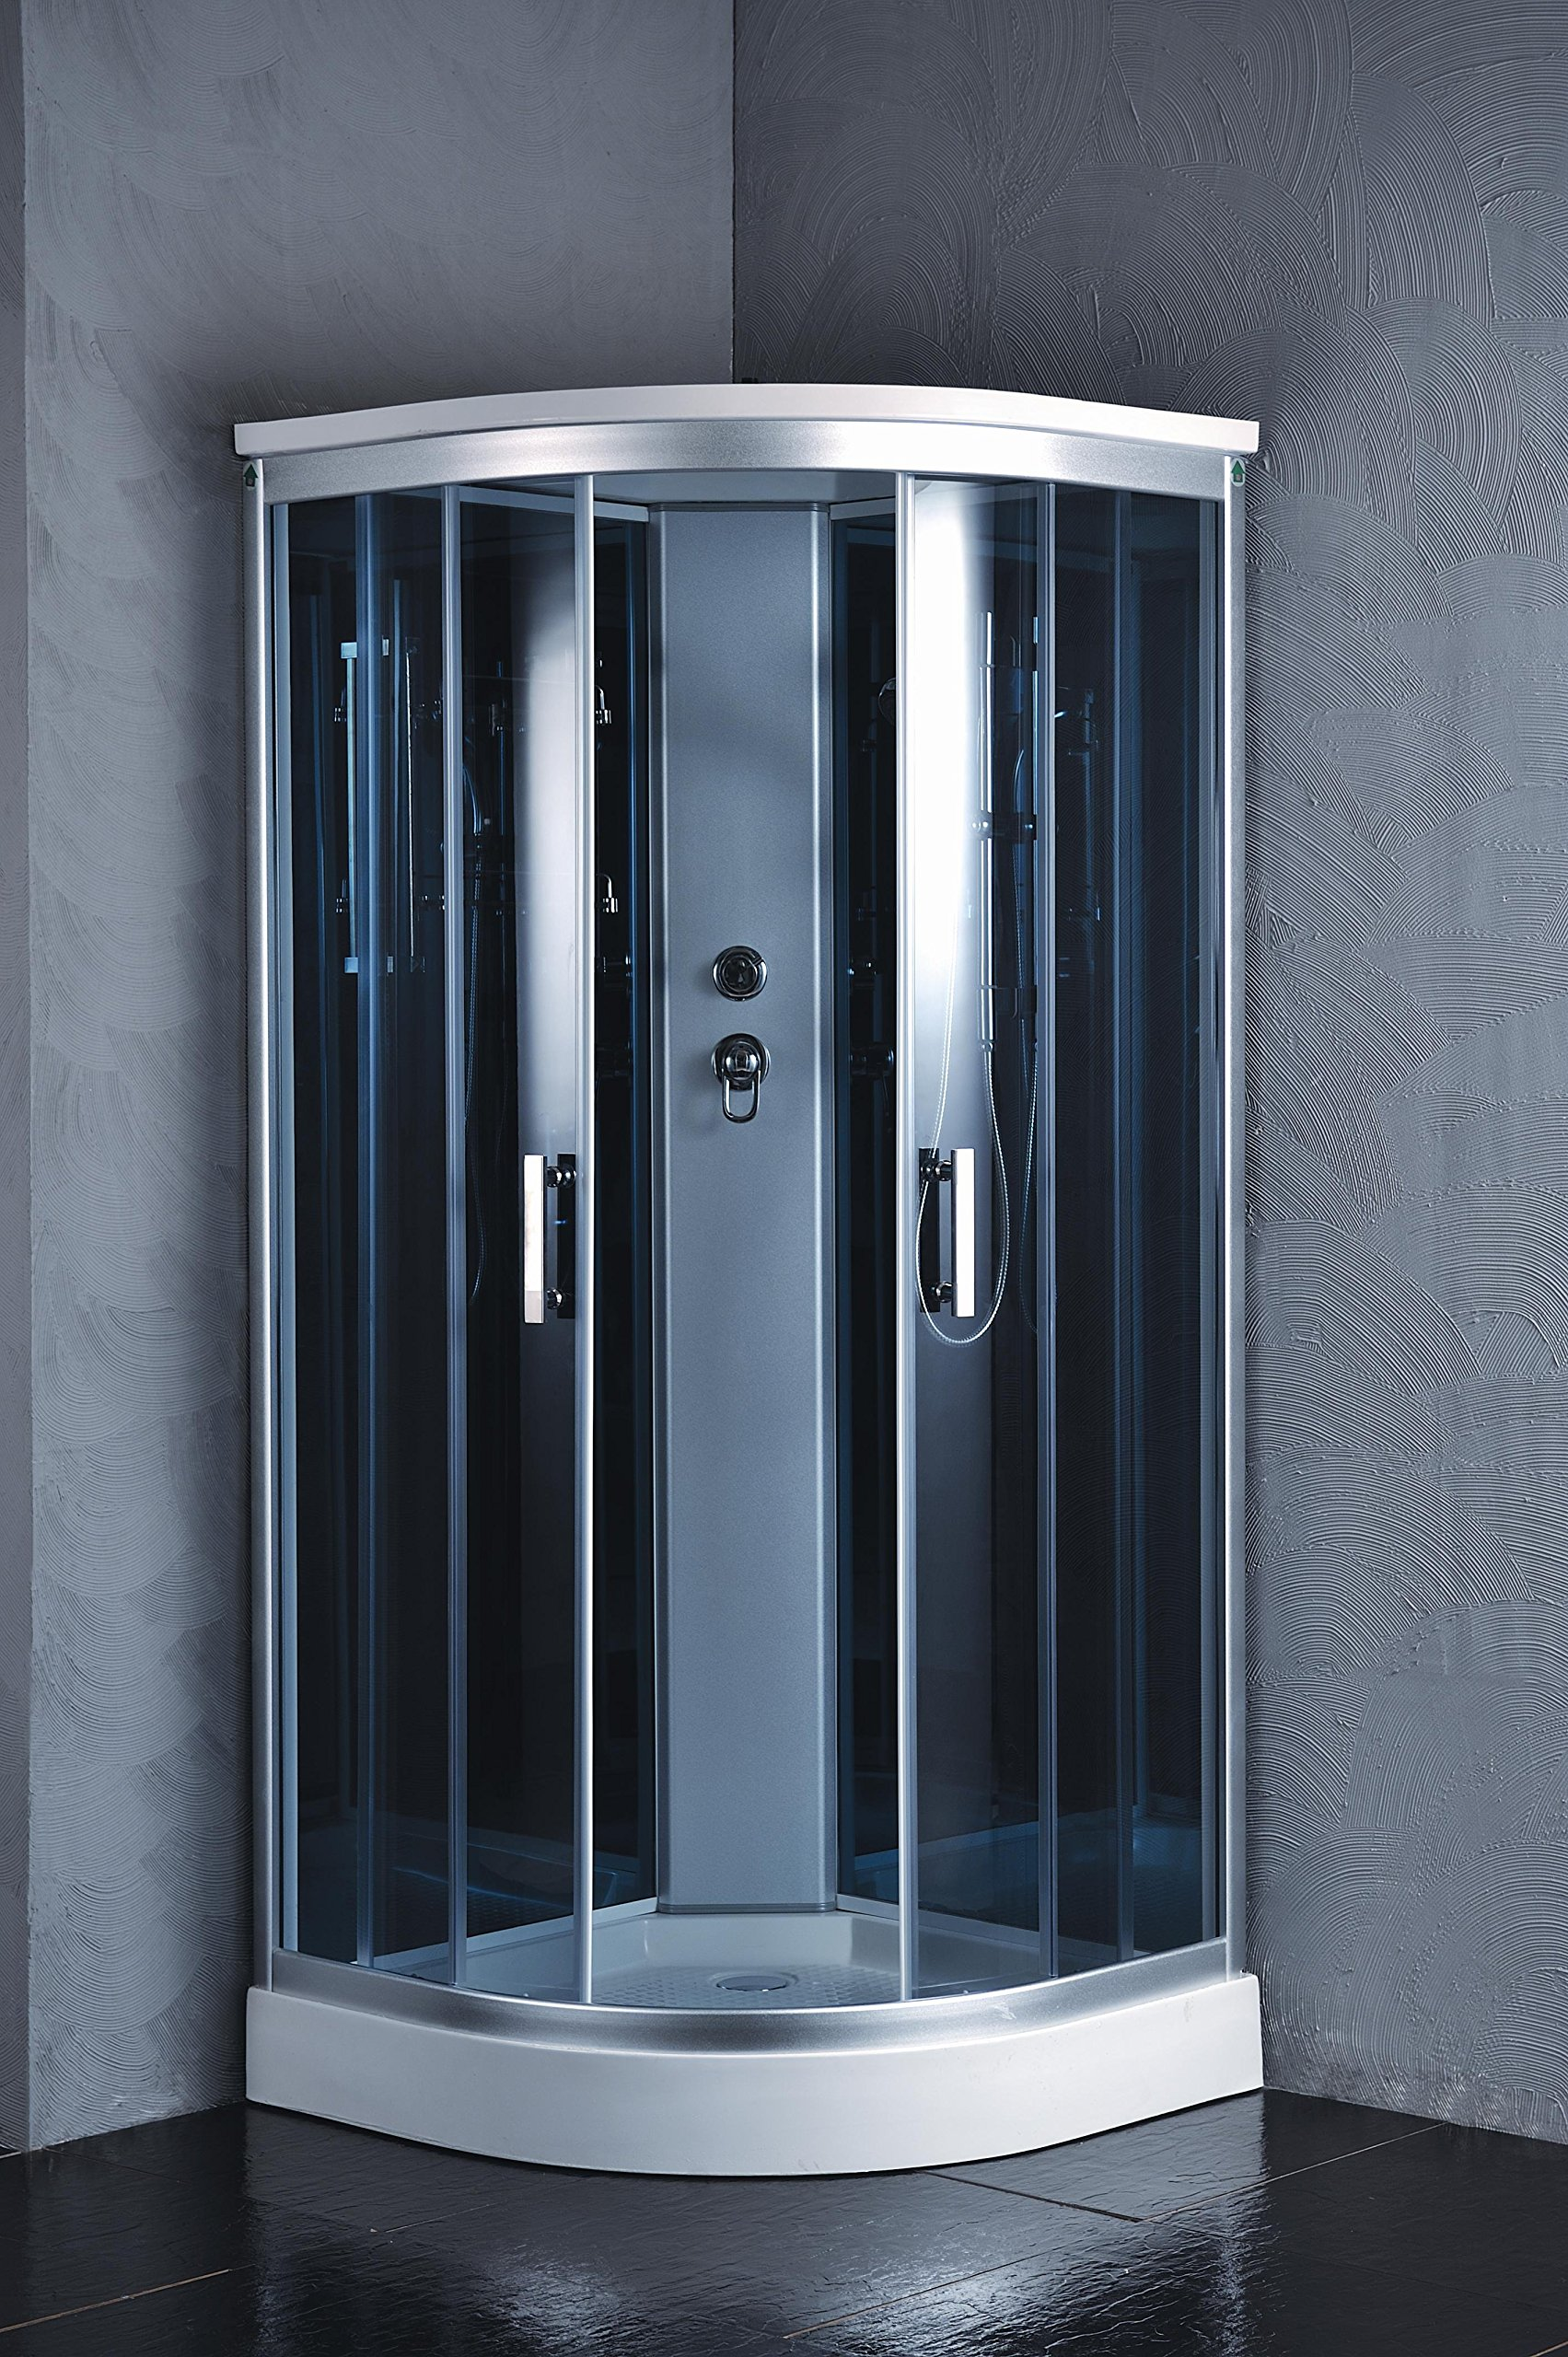 """Luxury Kokss 9918 Shower enclosure 36"""" x 36"""" Multi function hand shower and overhead rain. Modern shower enclosure with futuristic look, Computer control panel, home bathroom design by bath masters (Image #1)"""